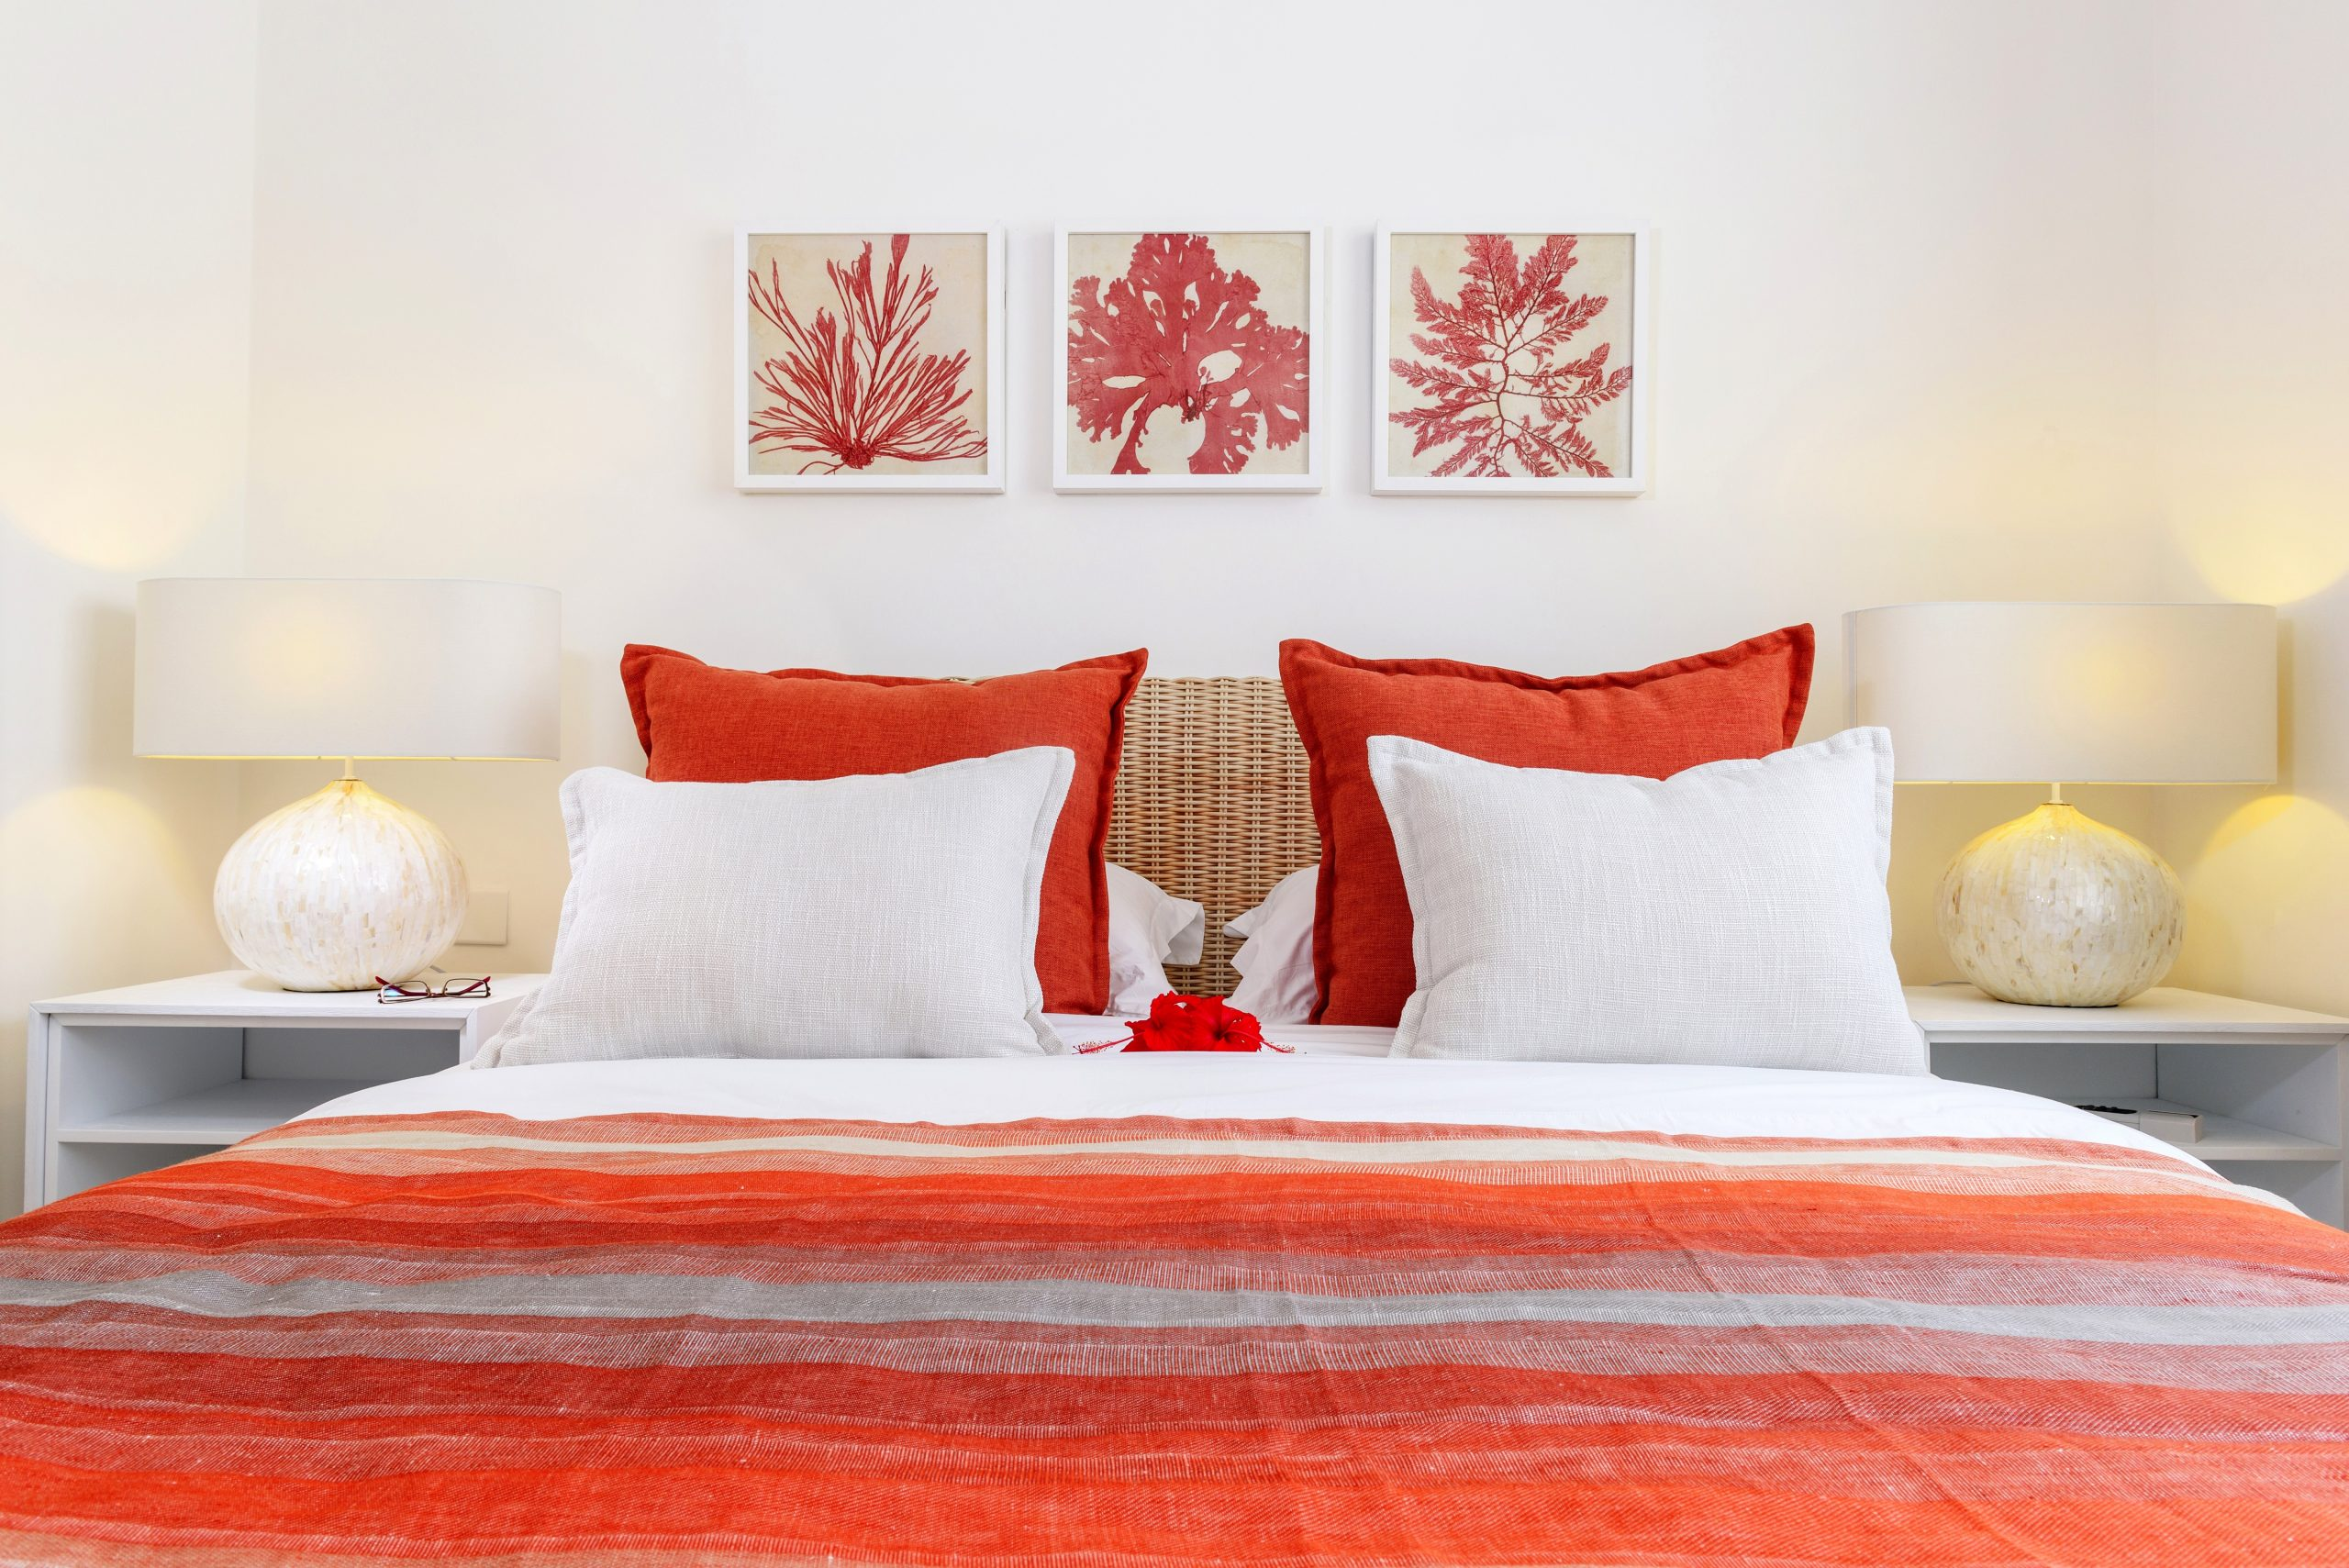 Myra-Seafront-Suites-Penthouses-SUITE-Bedroom-2-scaled.jpg